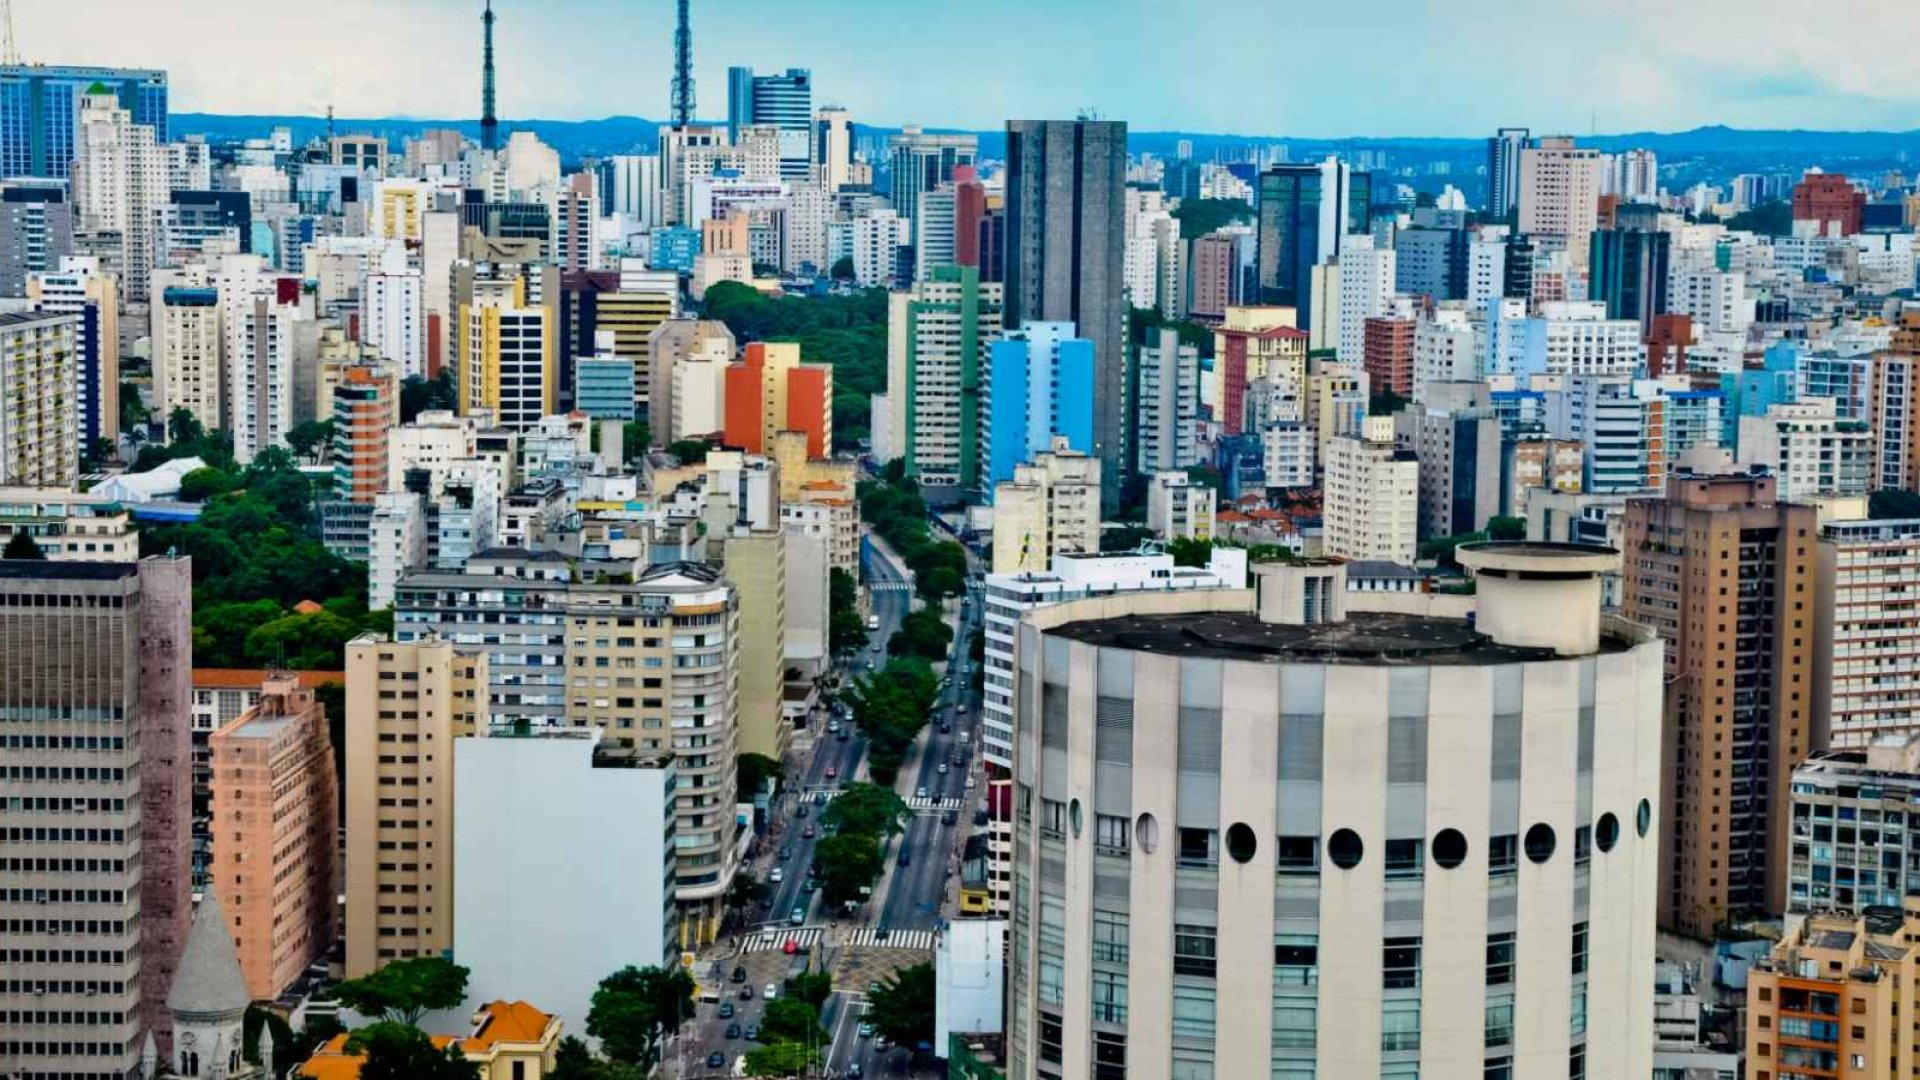 3 Reasons Why Sao Paulo Is a Hub for Business Innovation